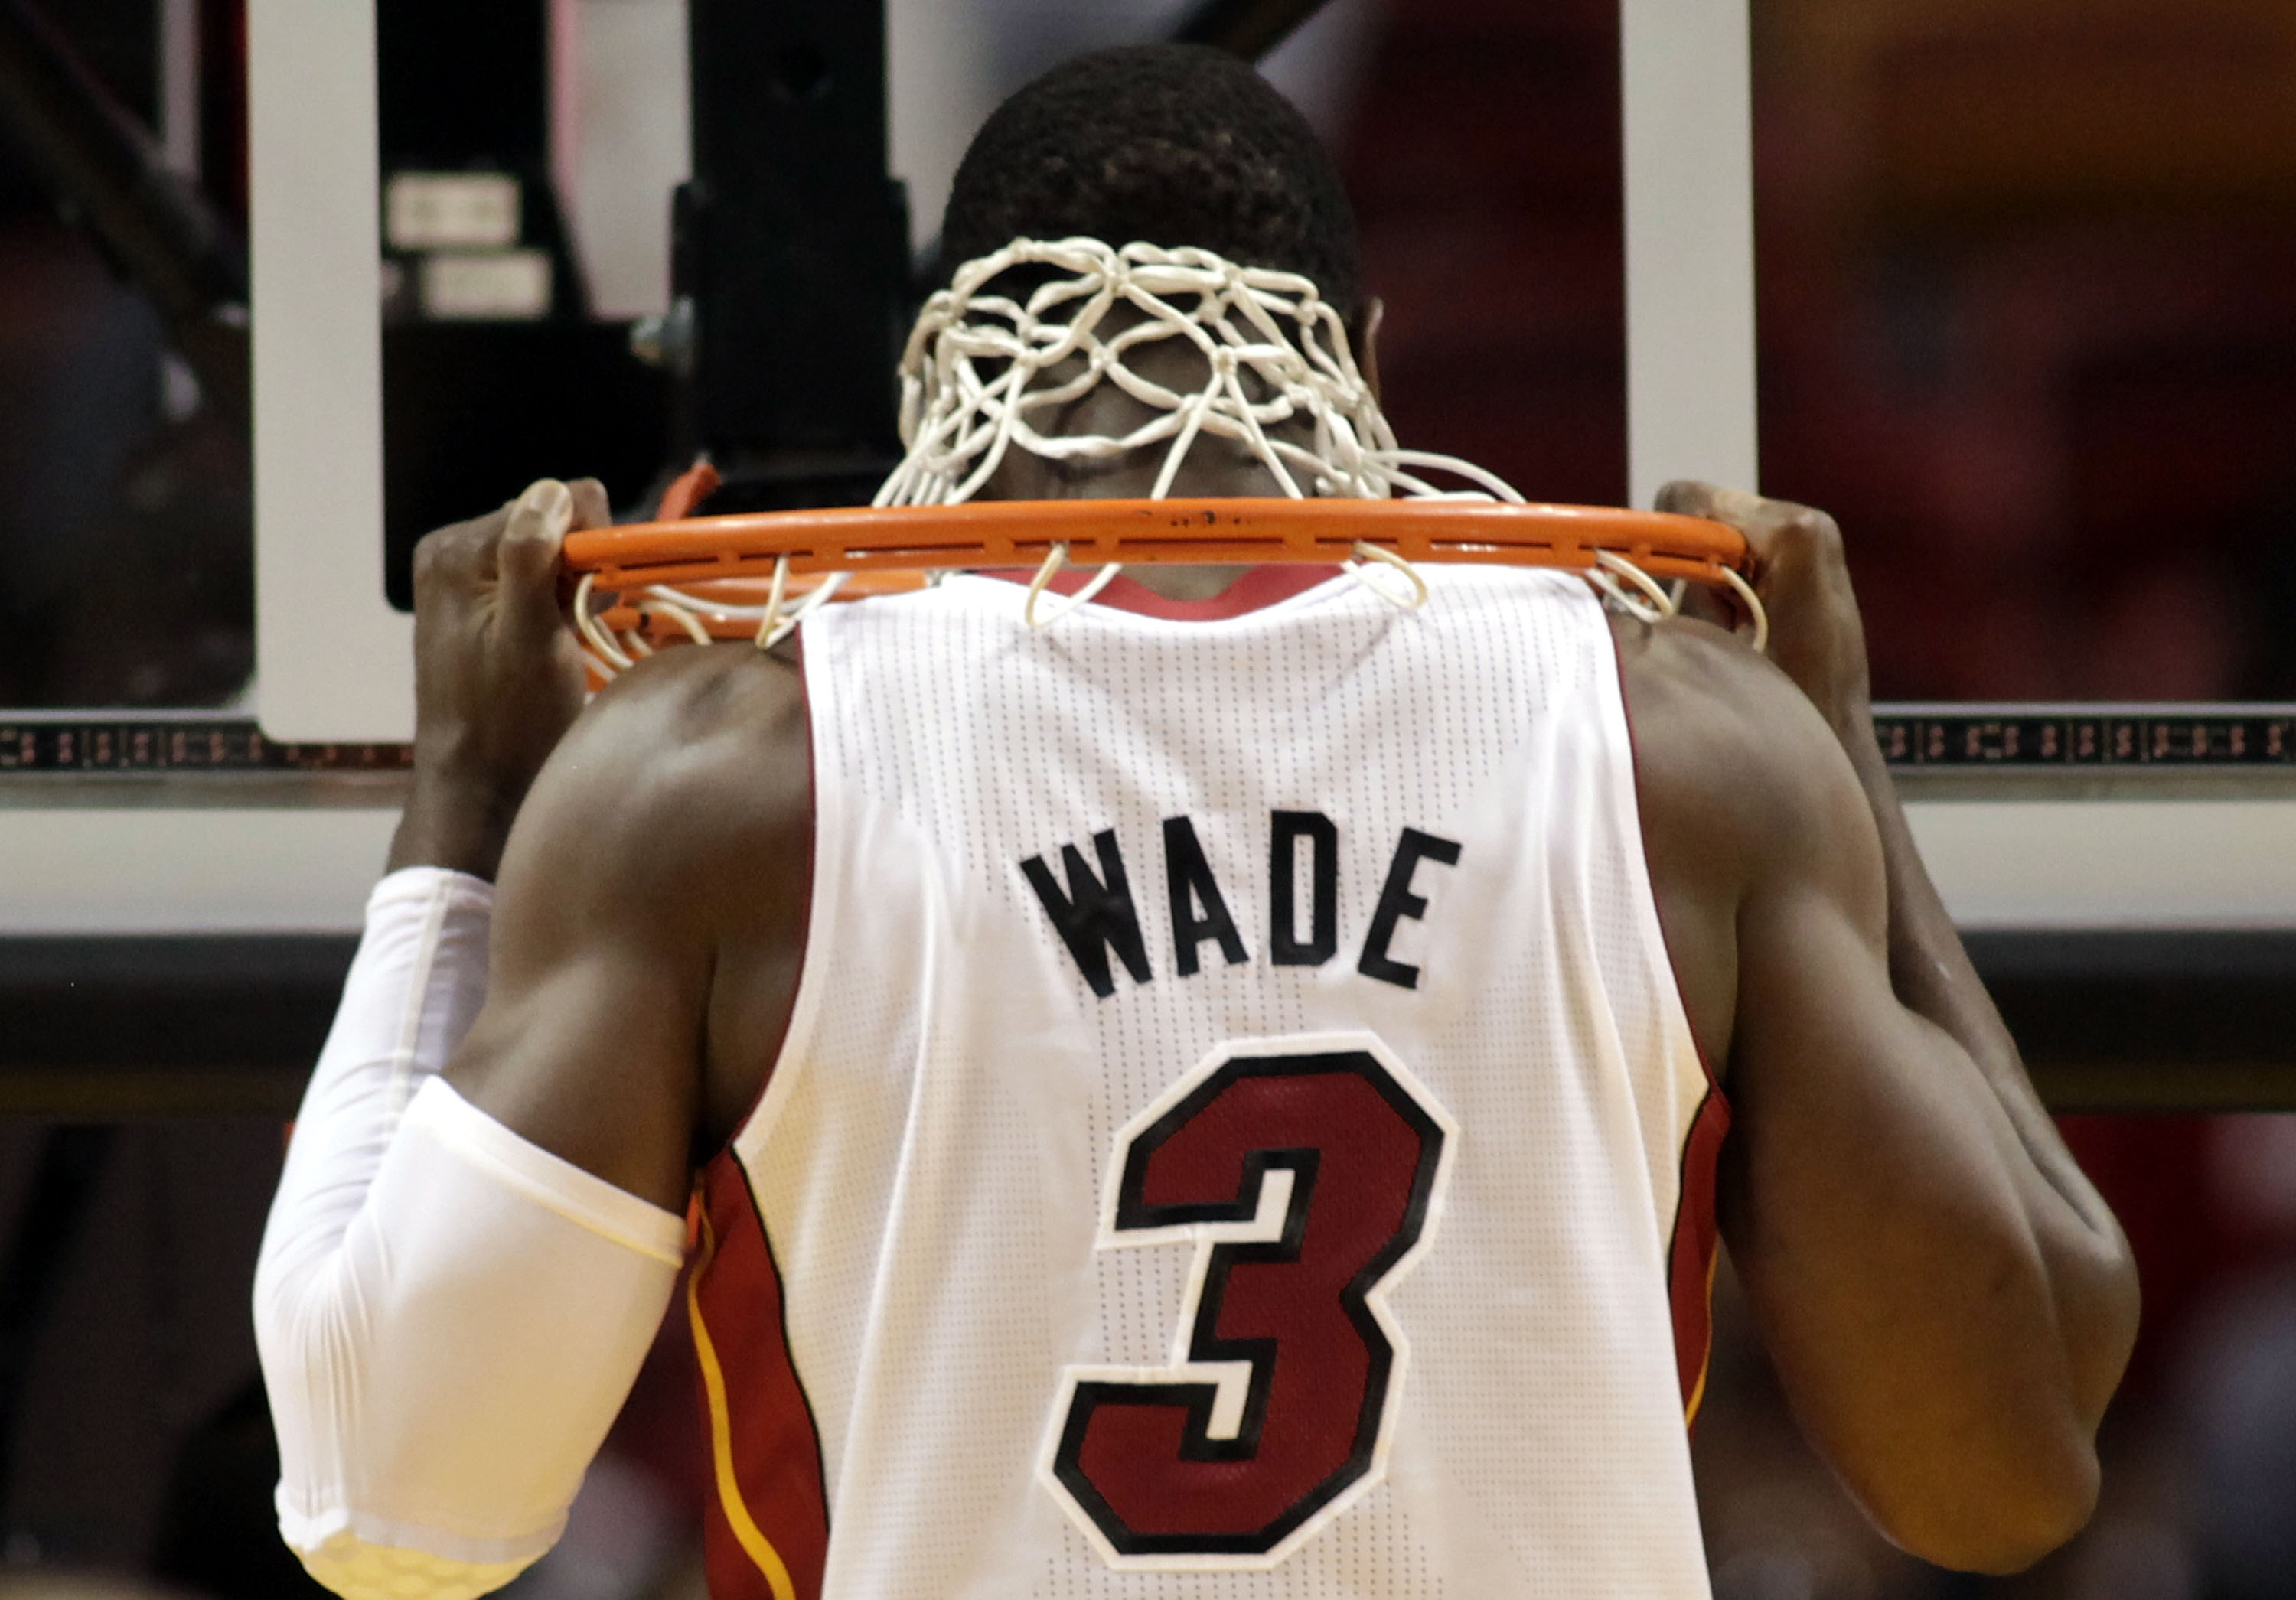 MIAMI, FL - MARCH 27:  Guard Dwyane Wade of the Miami Heat stretches against the Houston Rockets at American Airlines Arena on March 27, 2011 in Miami, Florida. NOTE TO USER: User expressly acknowledges and agrees that, by downloading and/or using this Ph